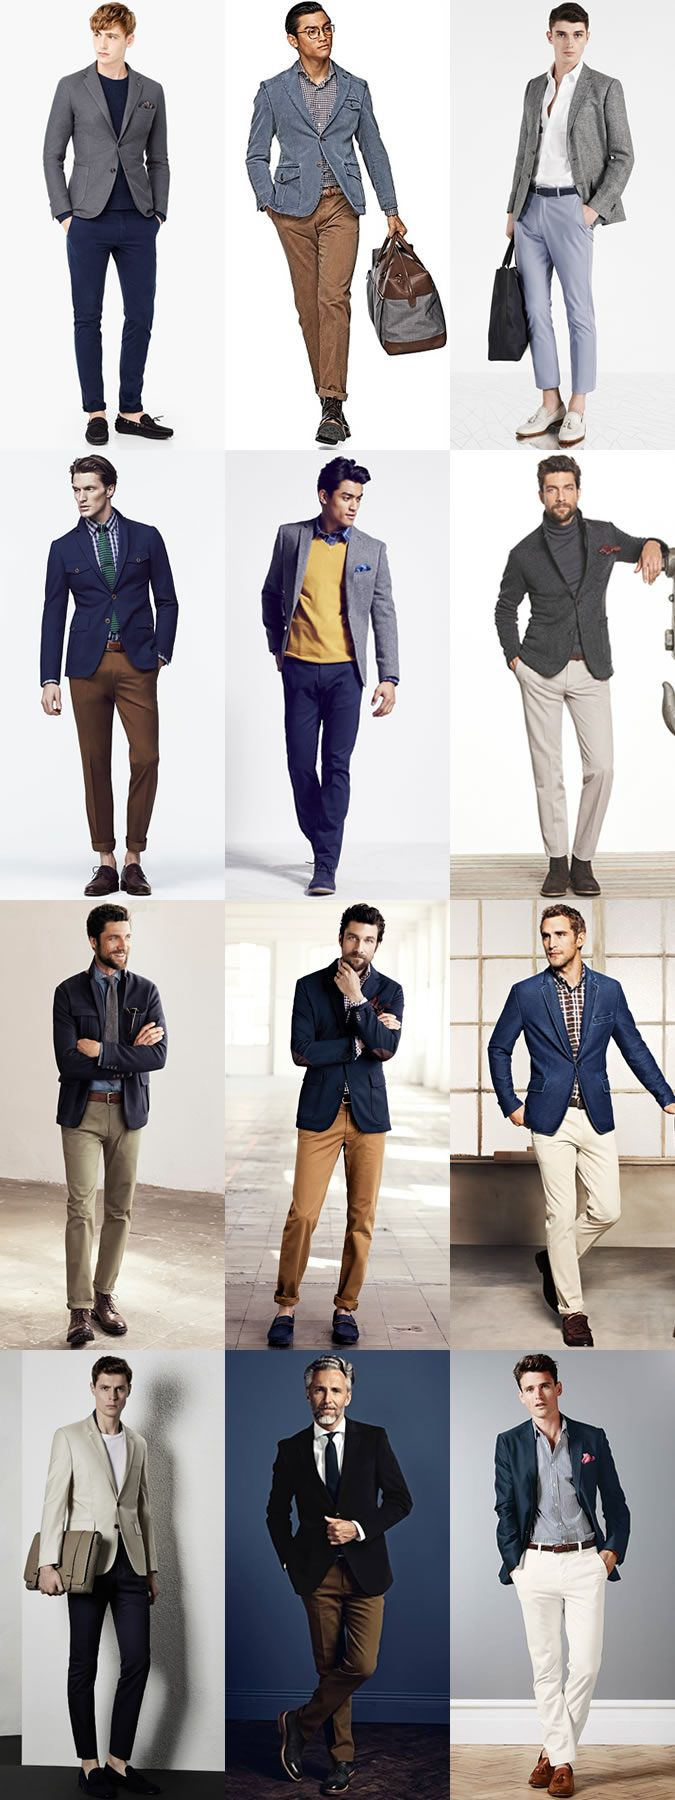 What is smart casual dress code for dinner women - Best 25 Smart Casual Ideas On Pinterest Smart Casual Outfit Smart Casual Women And Smart Casual Attire